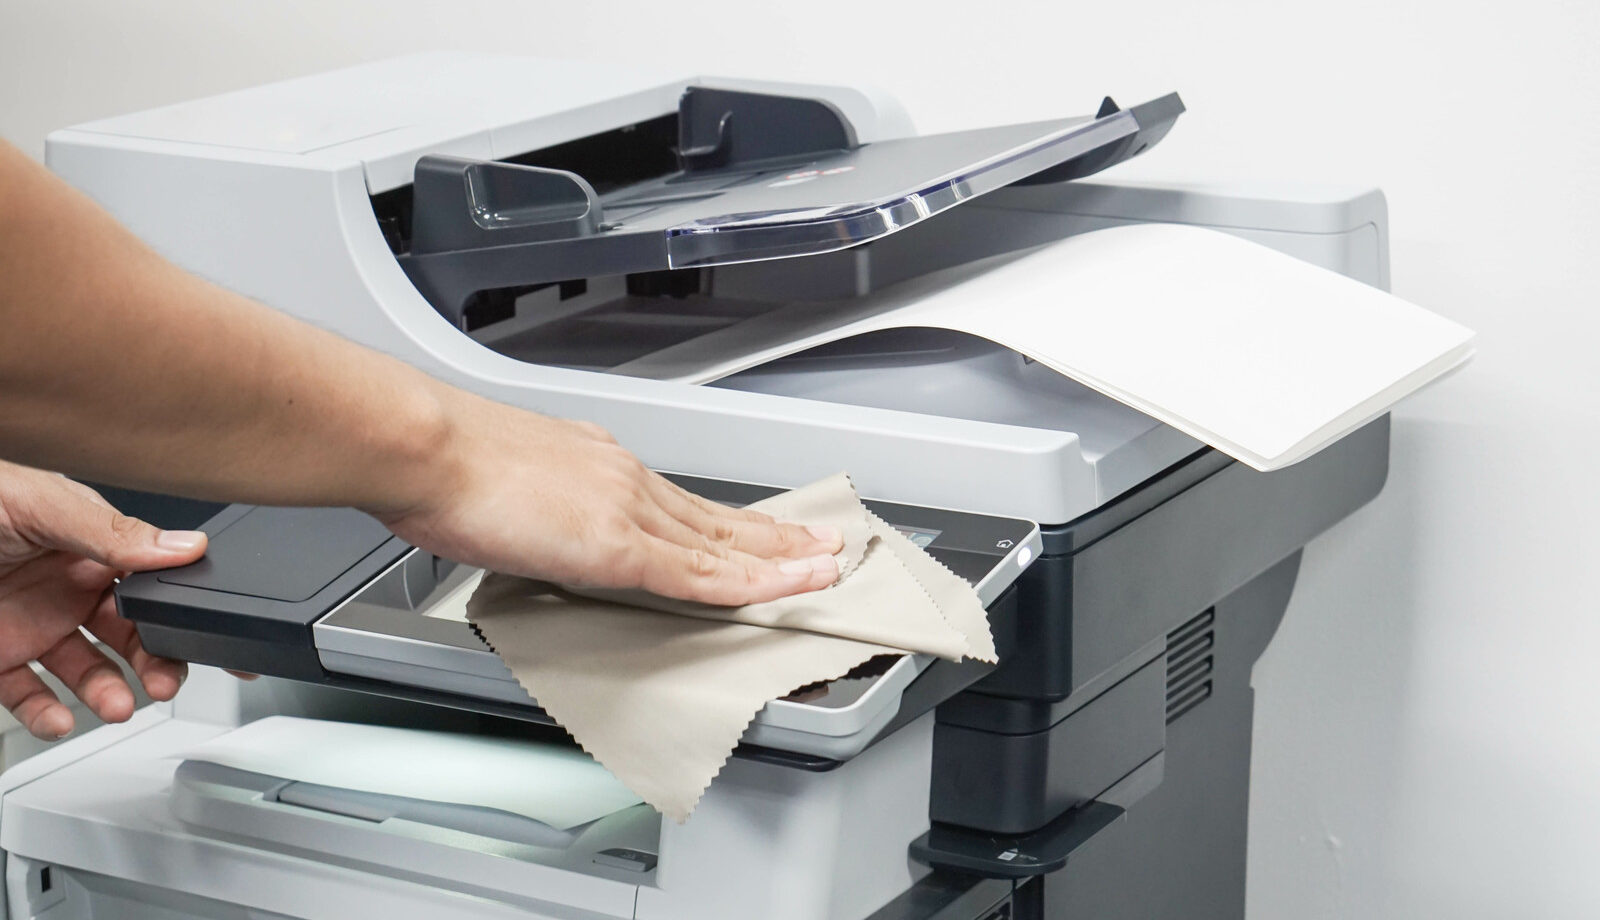 COPIER MAINTENANCE TIPS